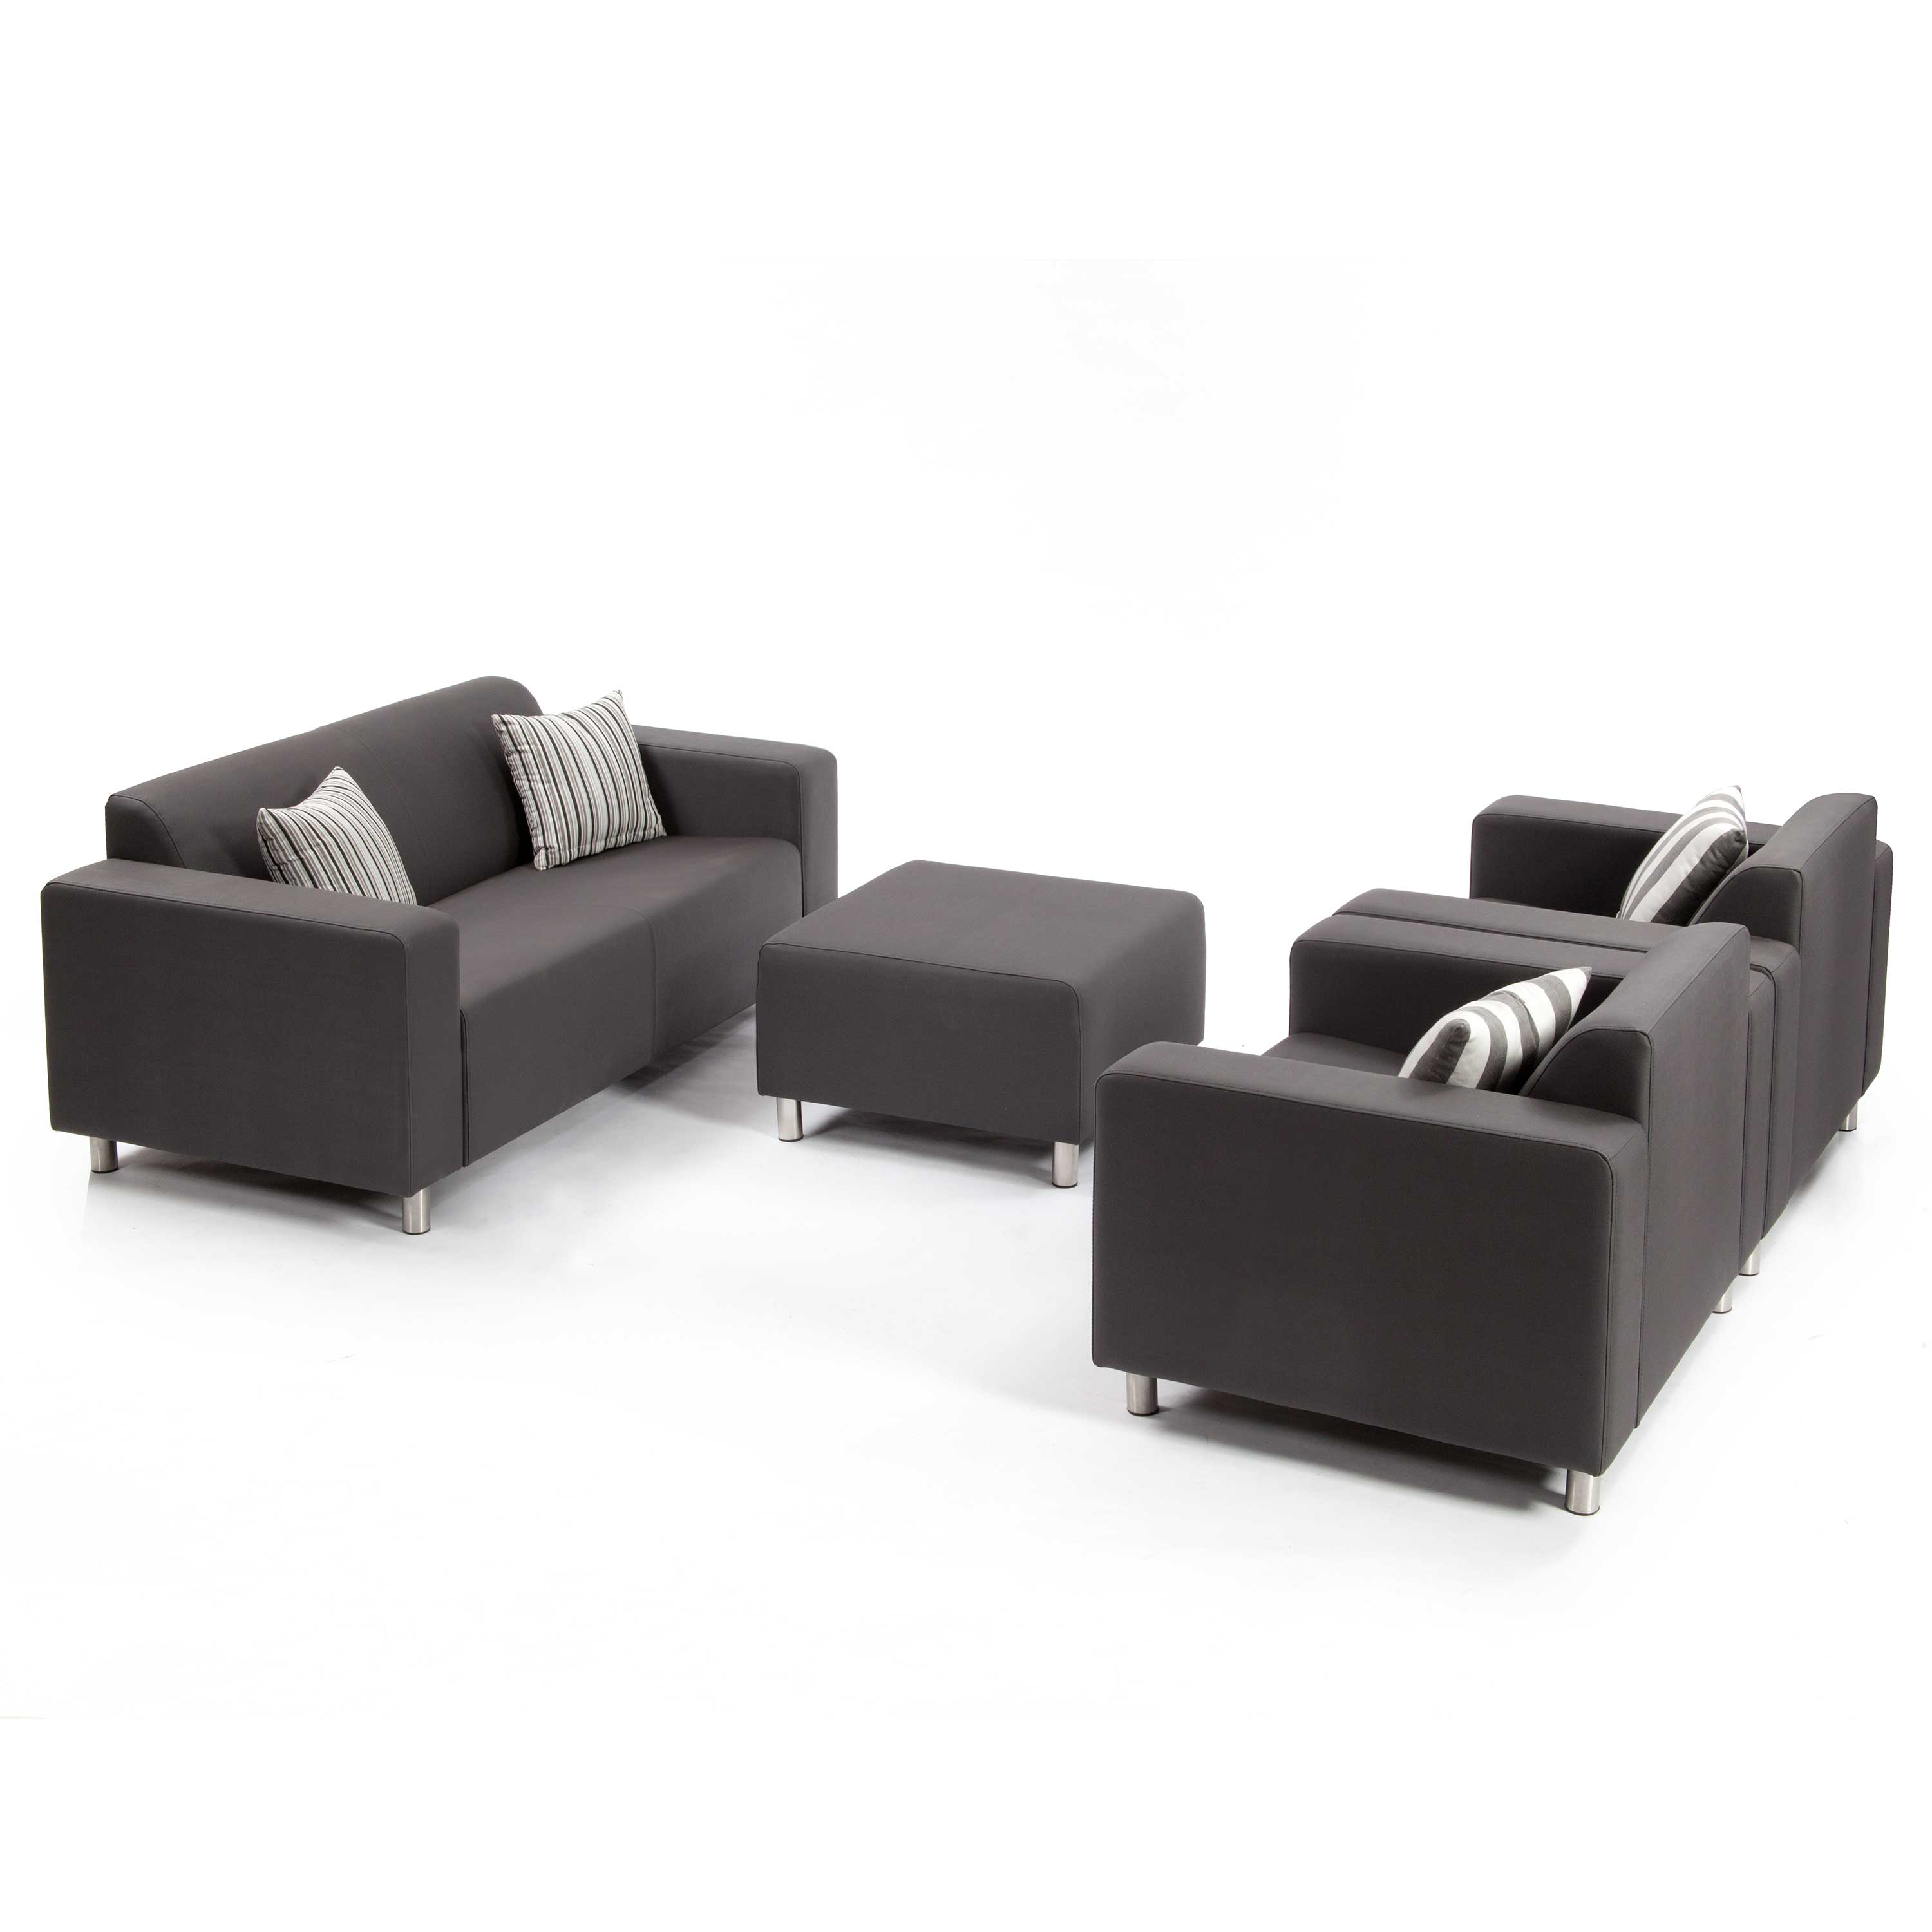 Sofas furniture sales today for Furniture sales today